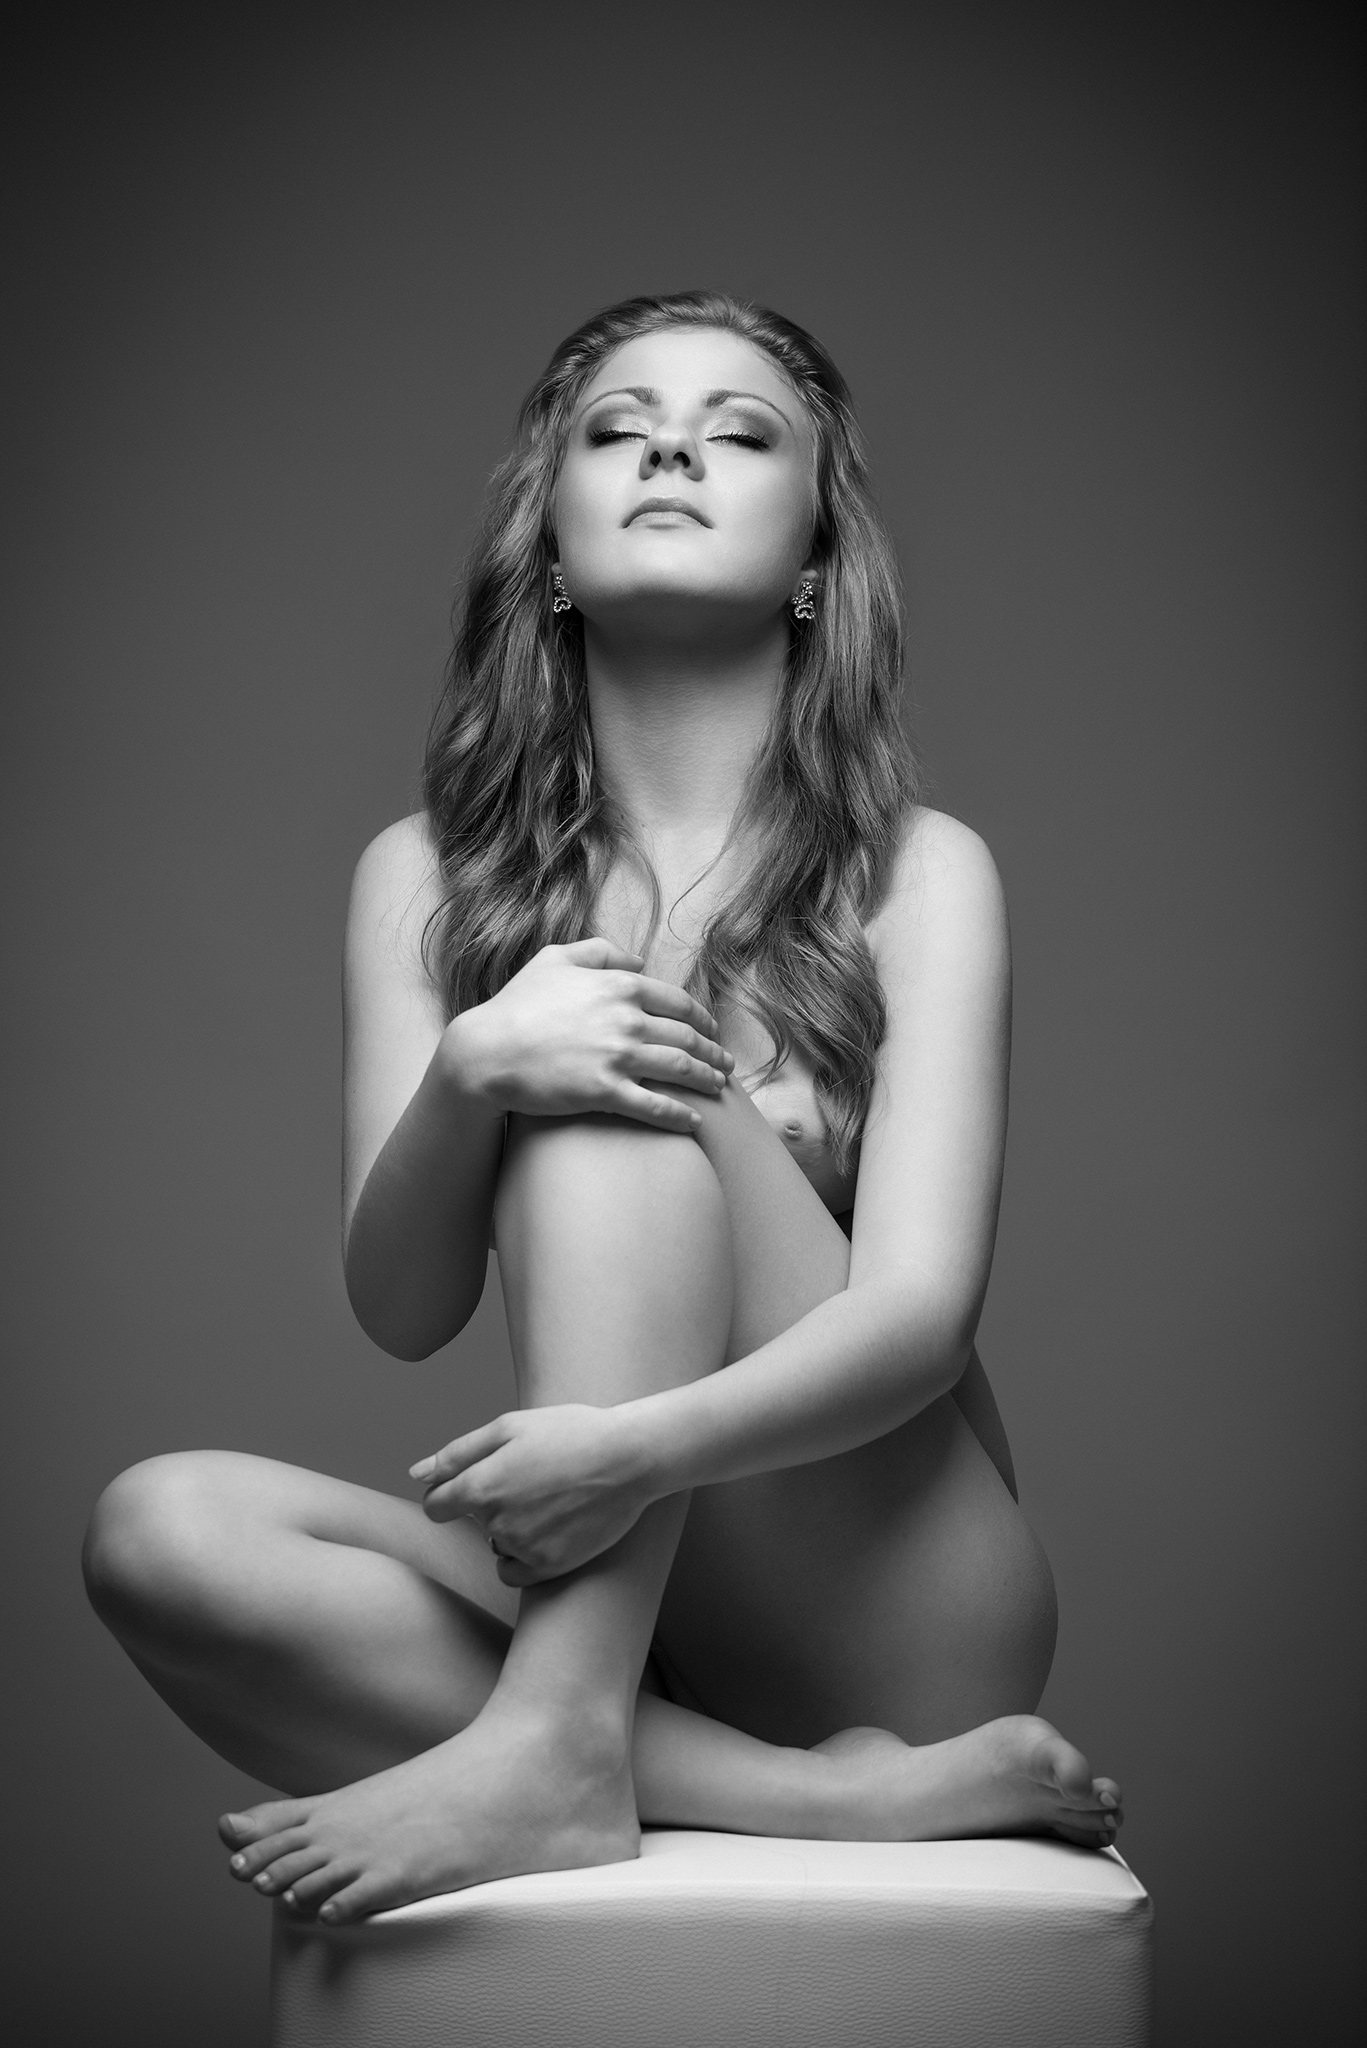 nude art glamour photography